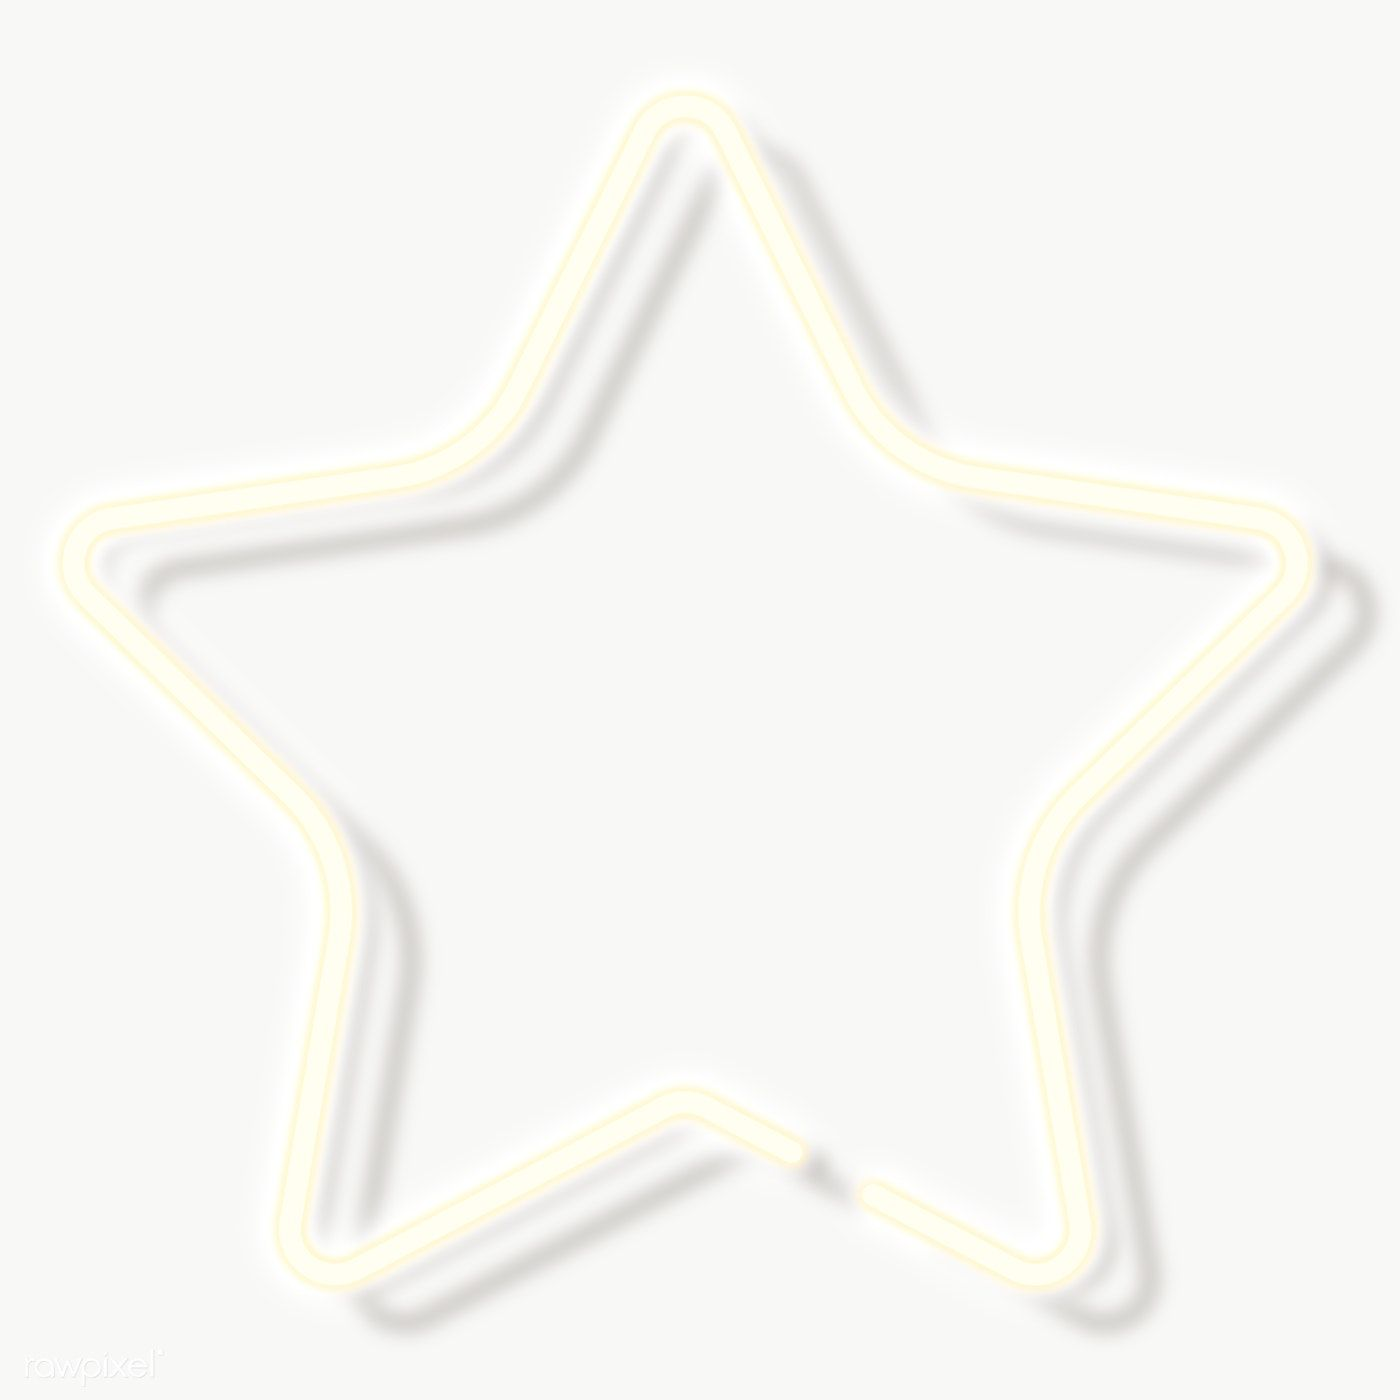 Star Neon Sign Transparent Png Free Image By Rawpixel Com Aew Neon Typography Neon Signs Neon